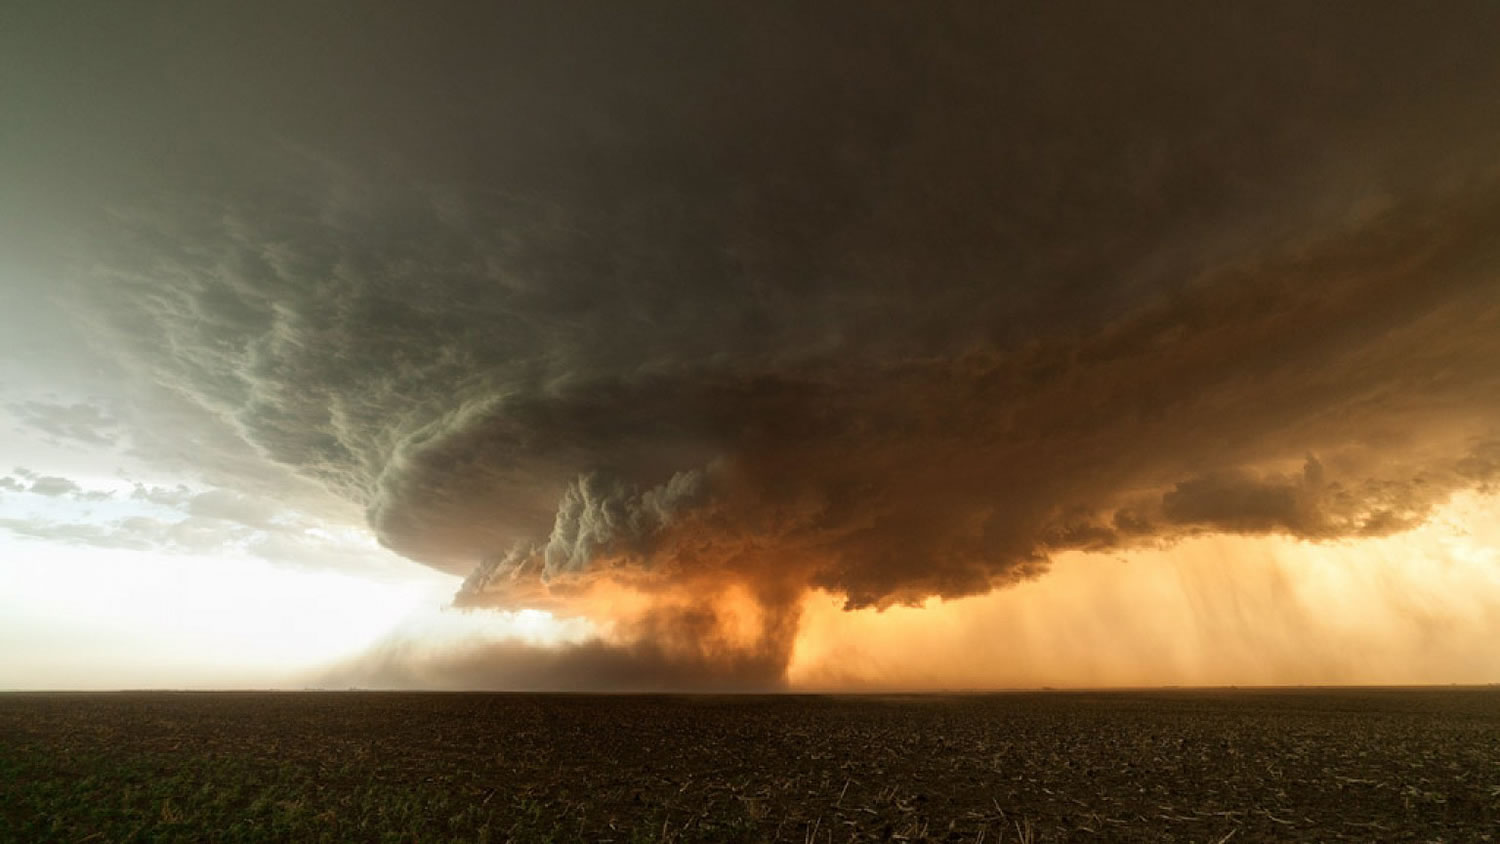 Captivating Photos of Storms